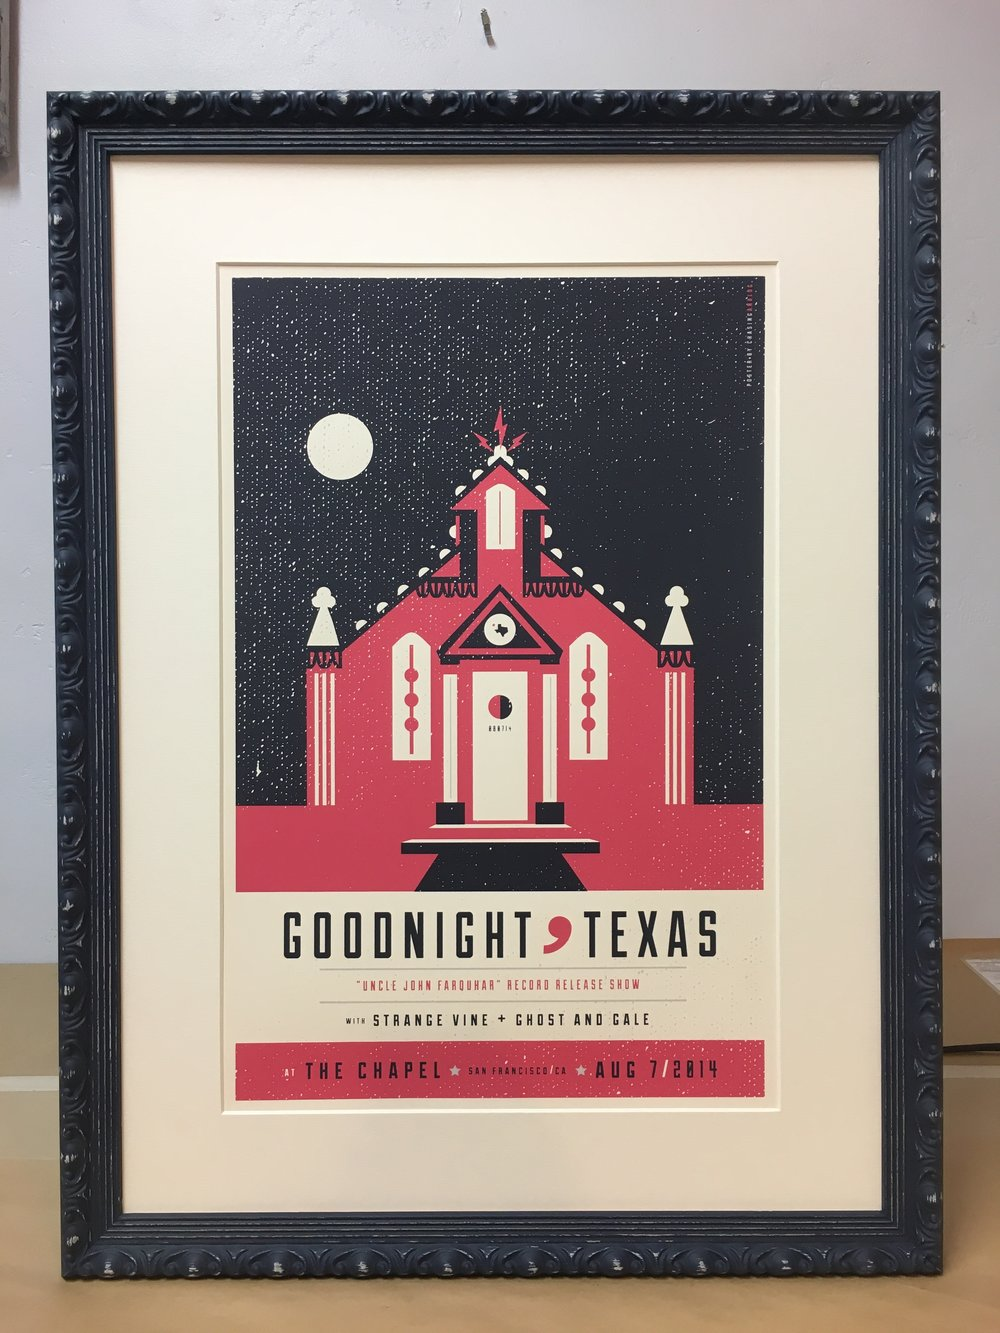 Goodnight, Texas Concert Poster